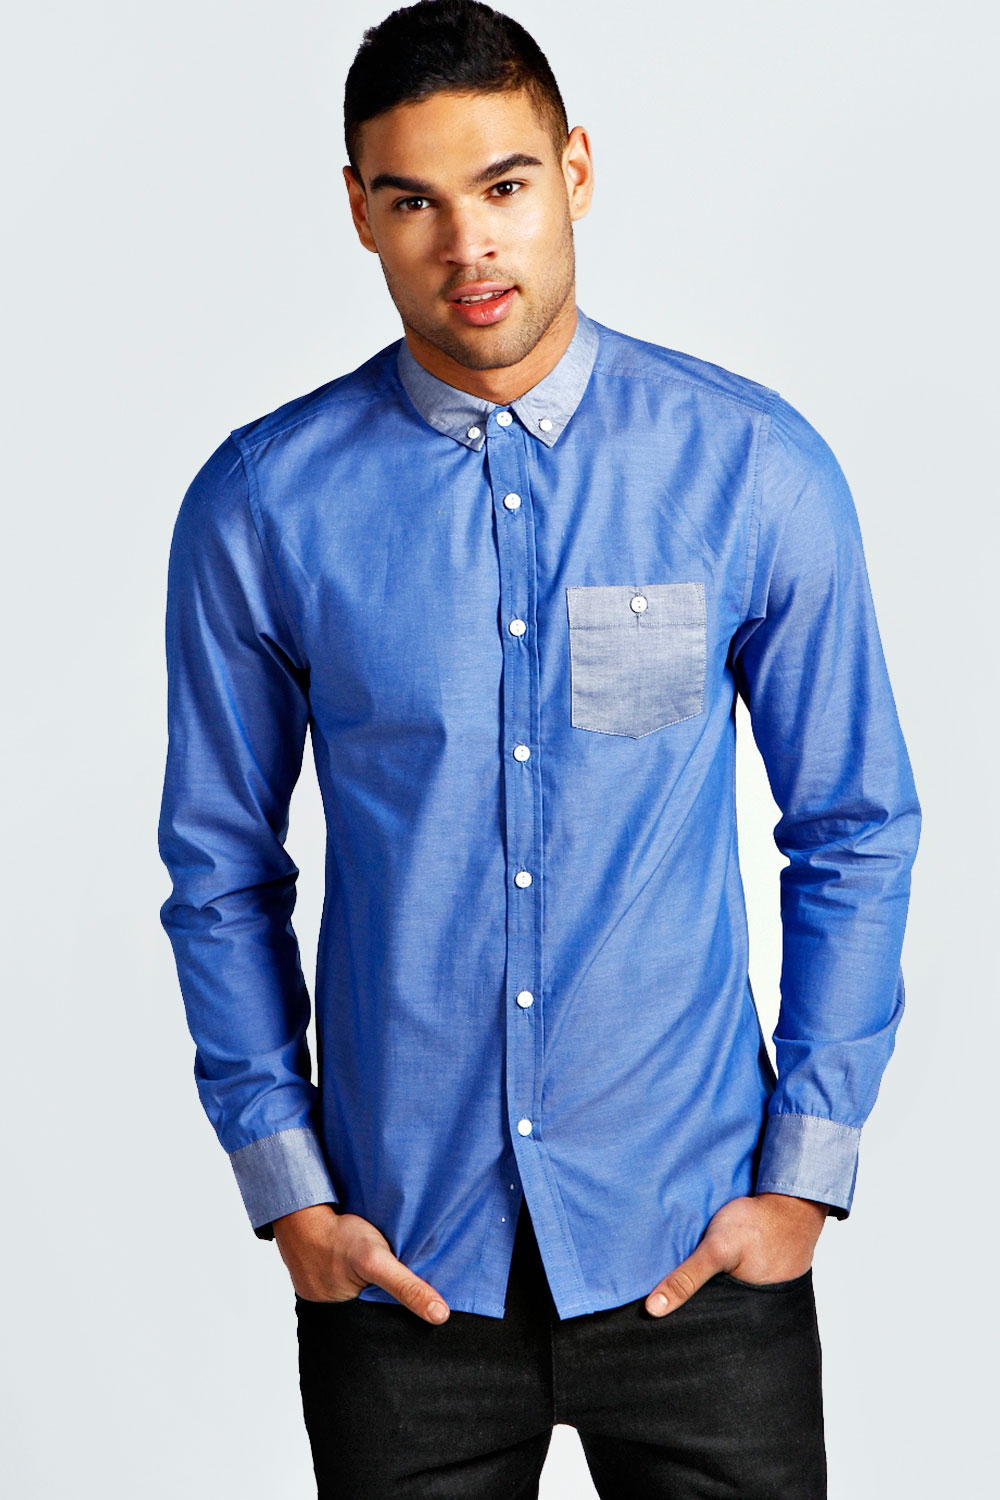 Boohoo-Mens-Long-Sleeve-Oxford-Cotton-Shirt-With-Contrast-Trims